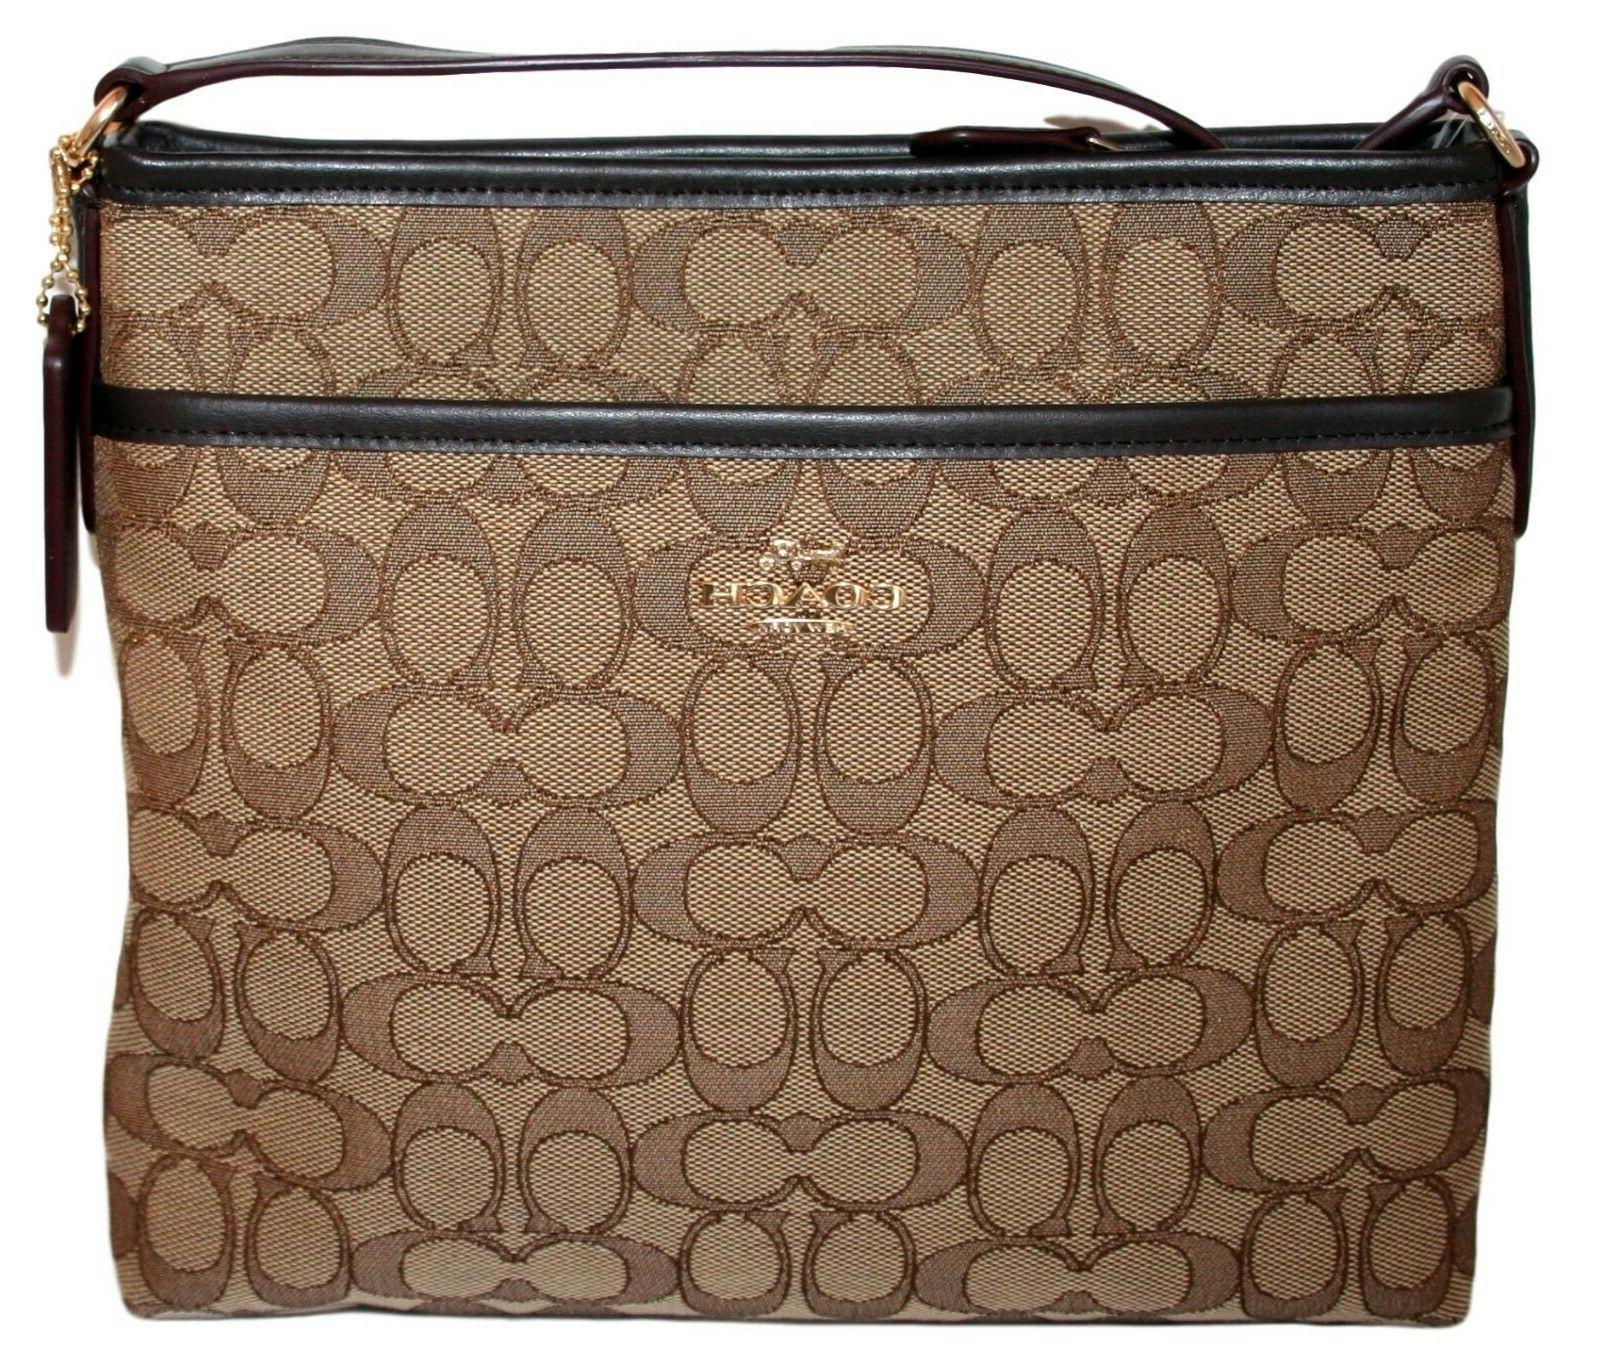 Coach Signature Bag Crossbody Purse F29960